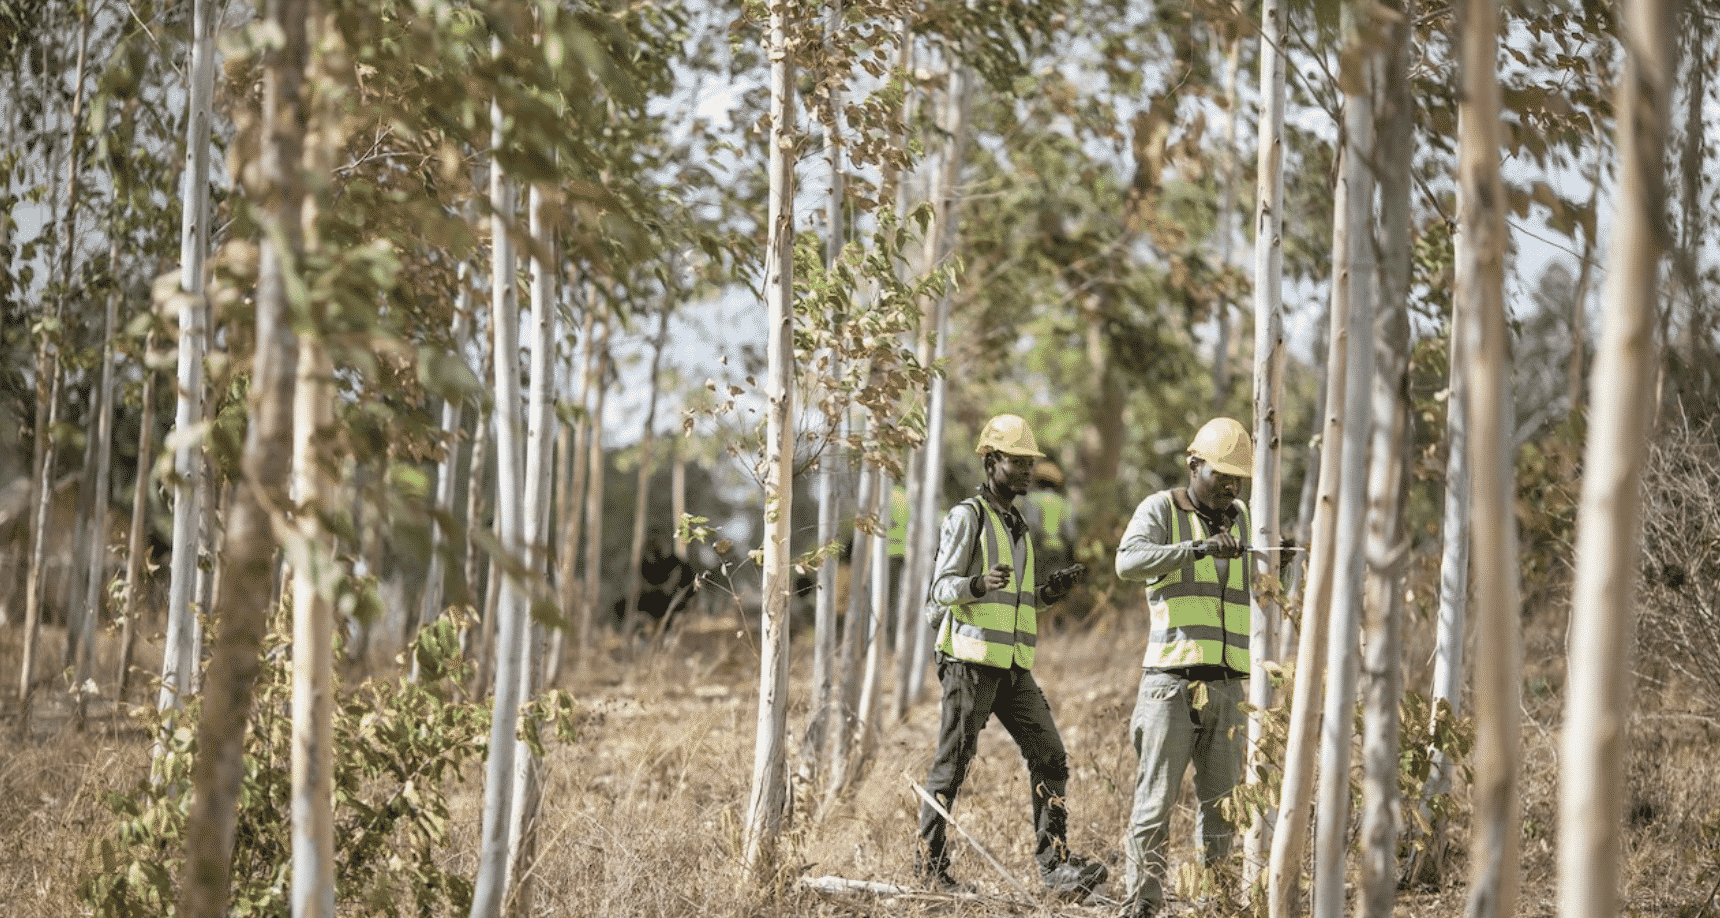 Apple contributes $200M to forestry Restoration projects